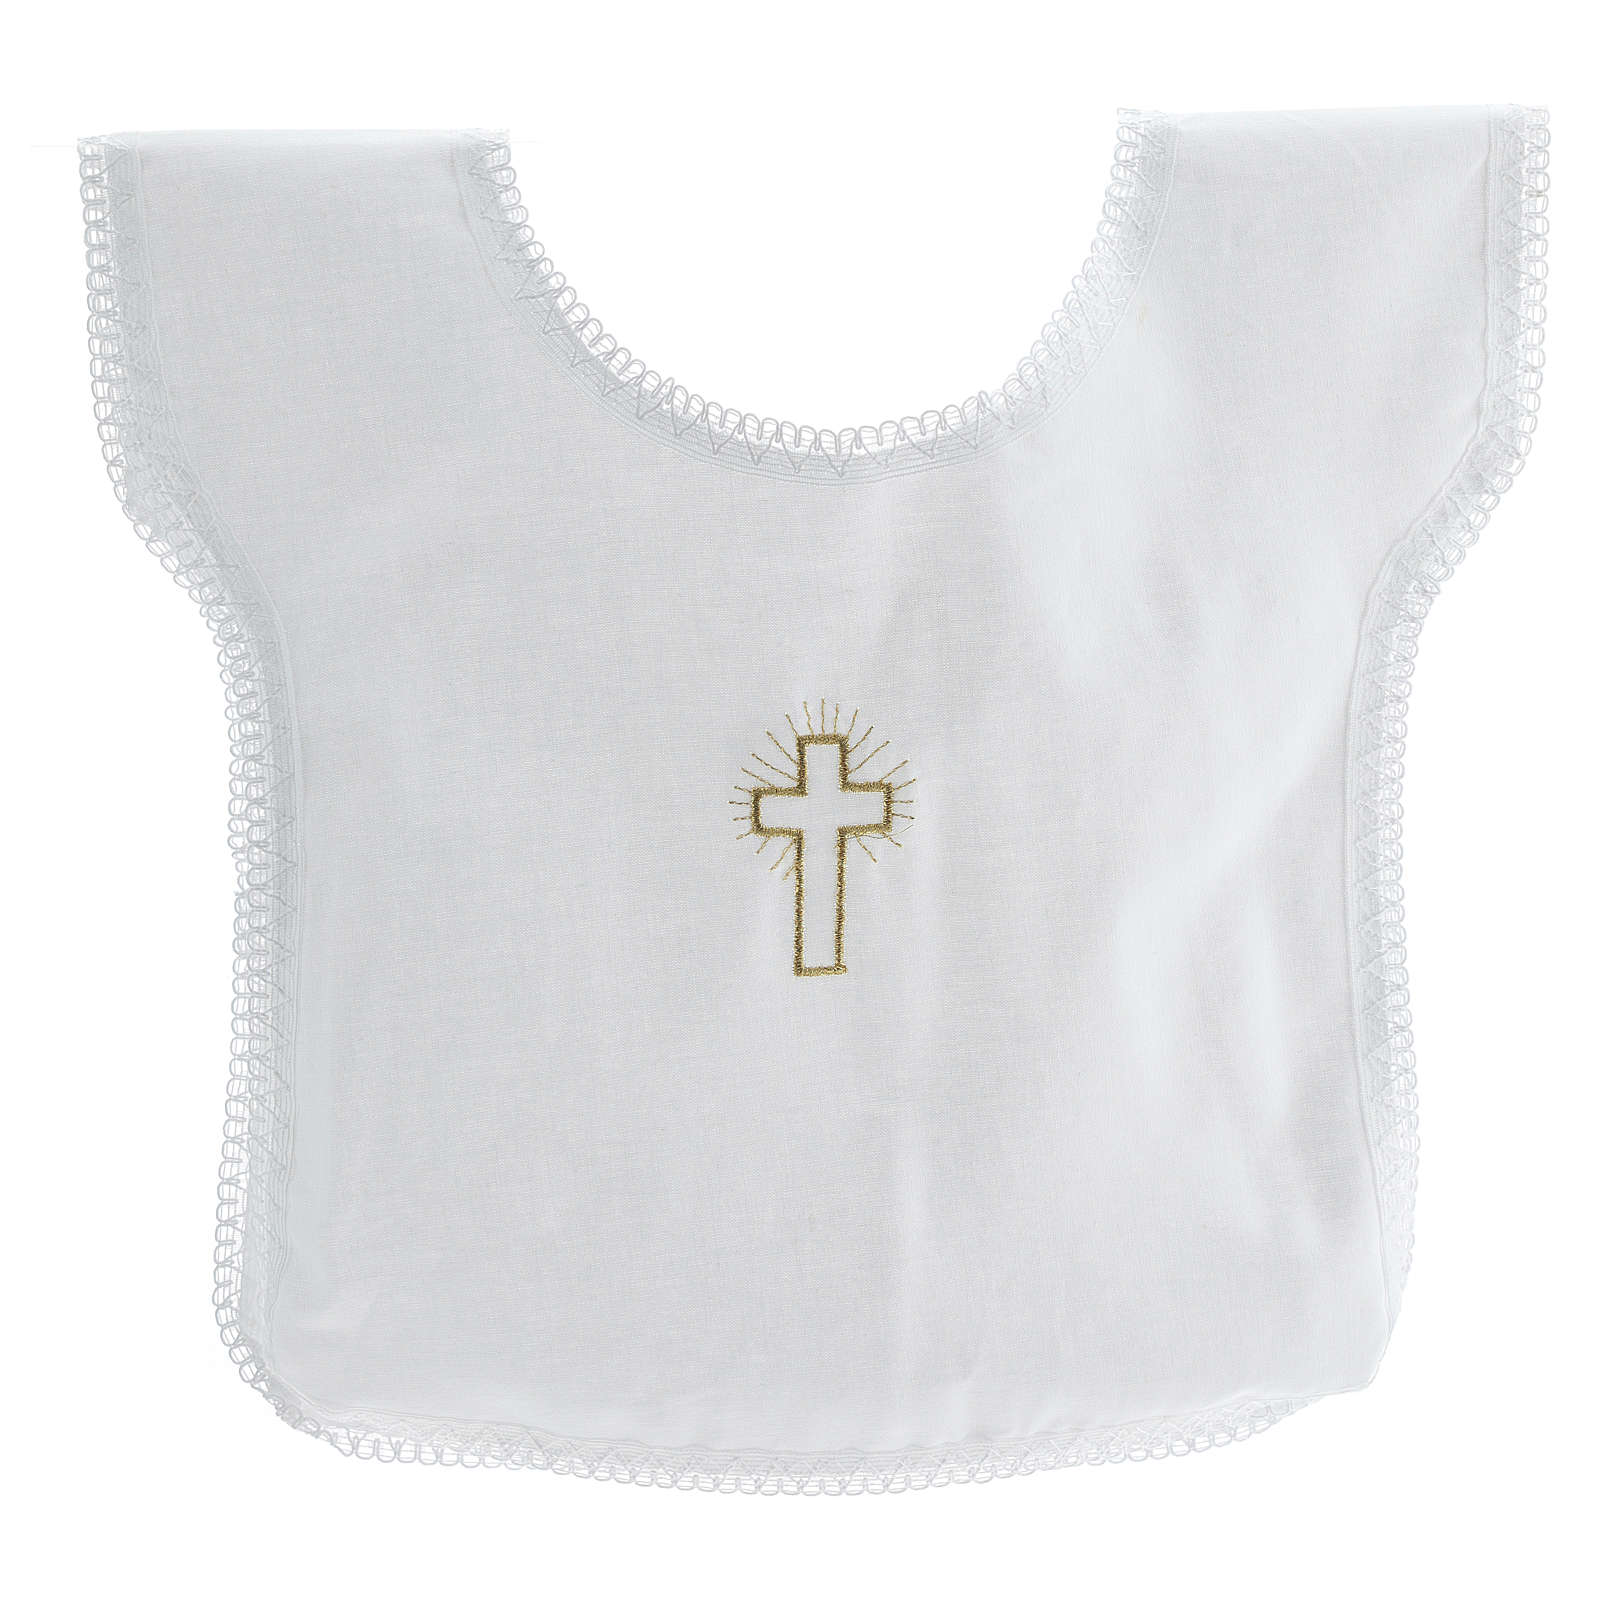 Baptismal shirt with cross 100% cotton 4